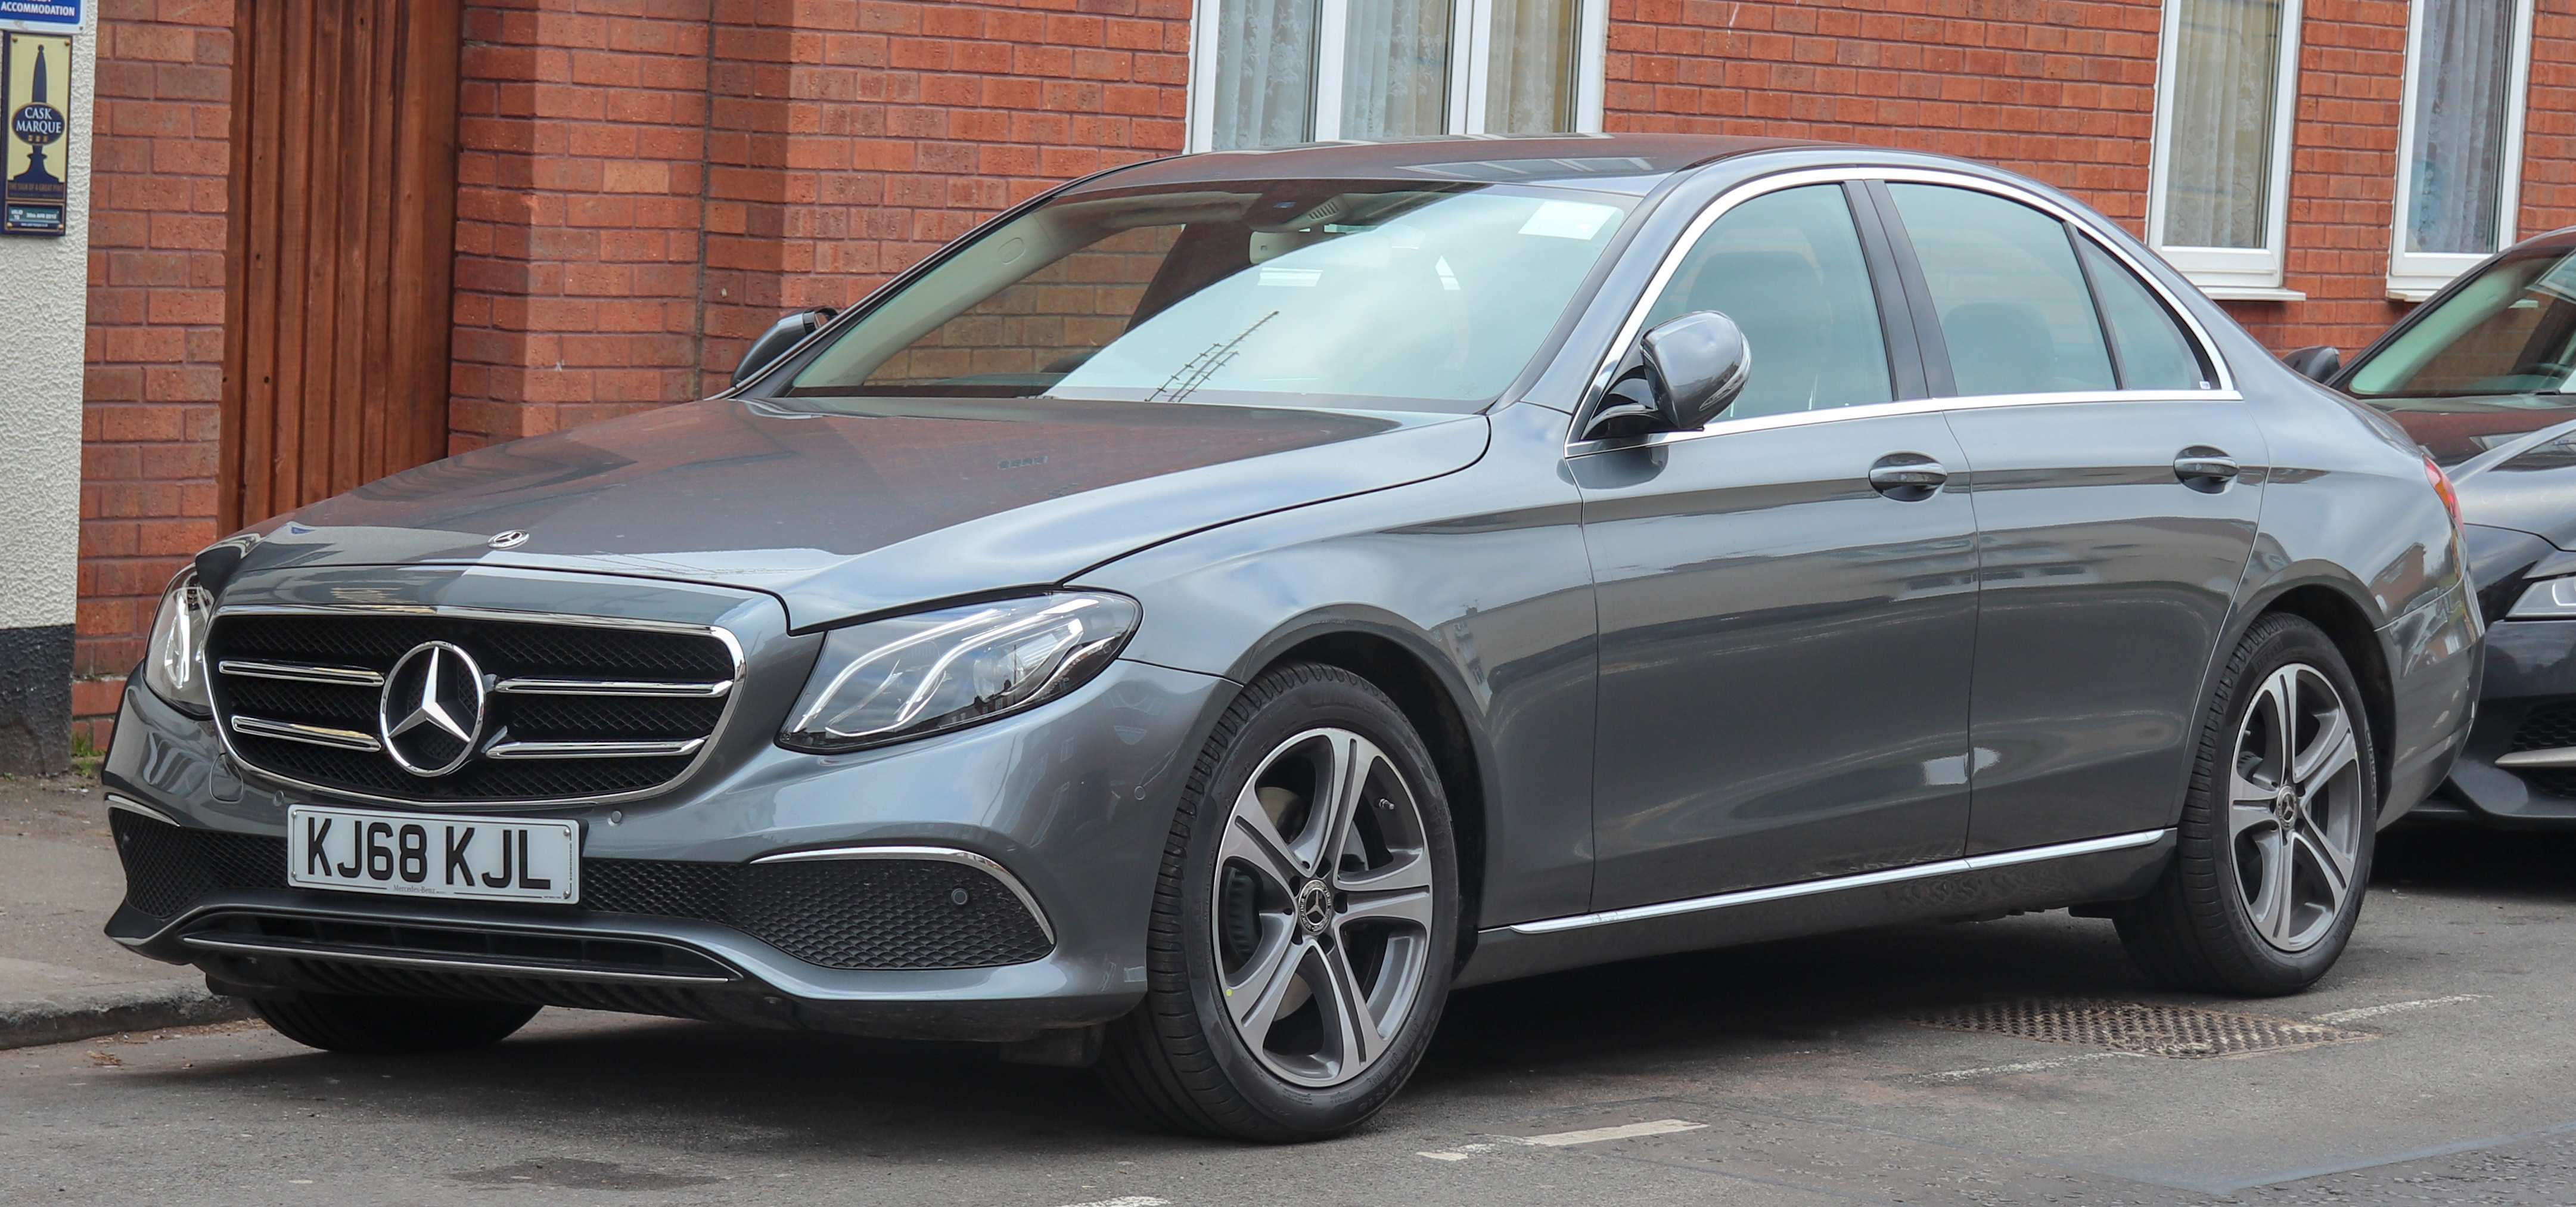 47 Great E180 Mercedes 2019 Redesign Price And Review Price with E180 Mercedes 2019 Redesign Price And Review